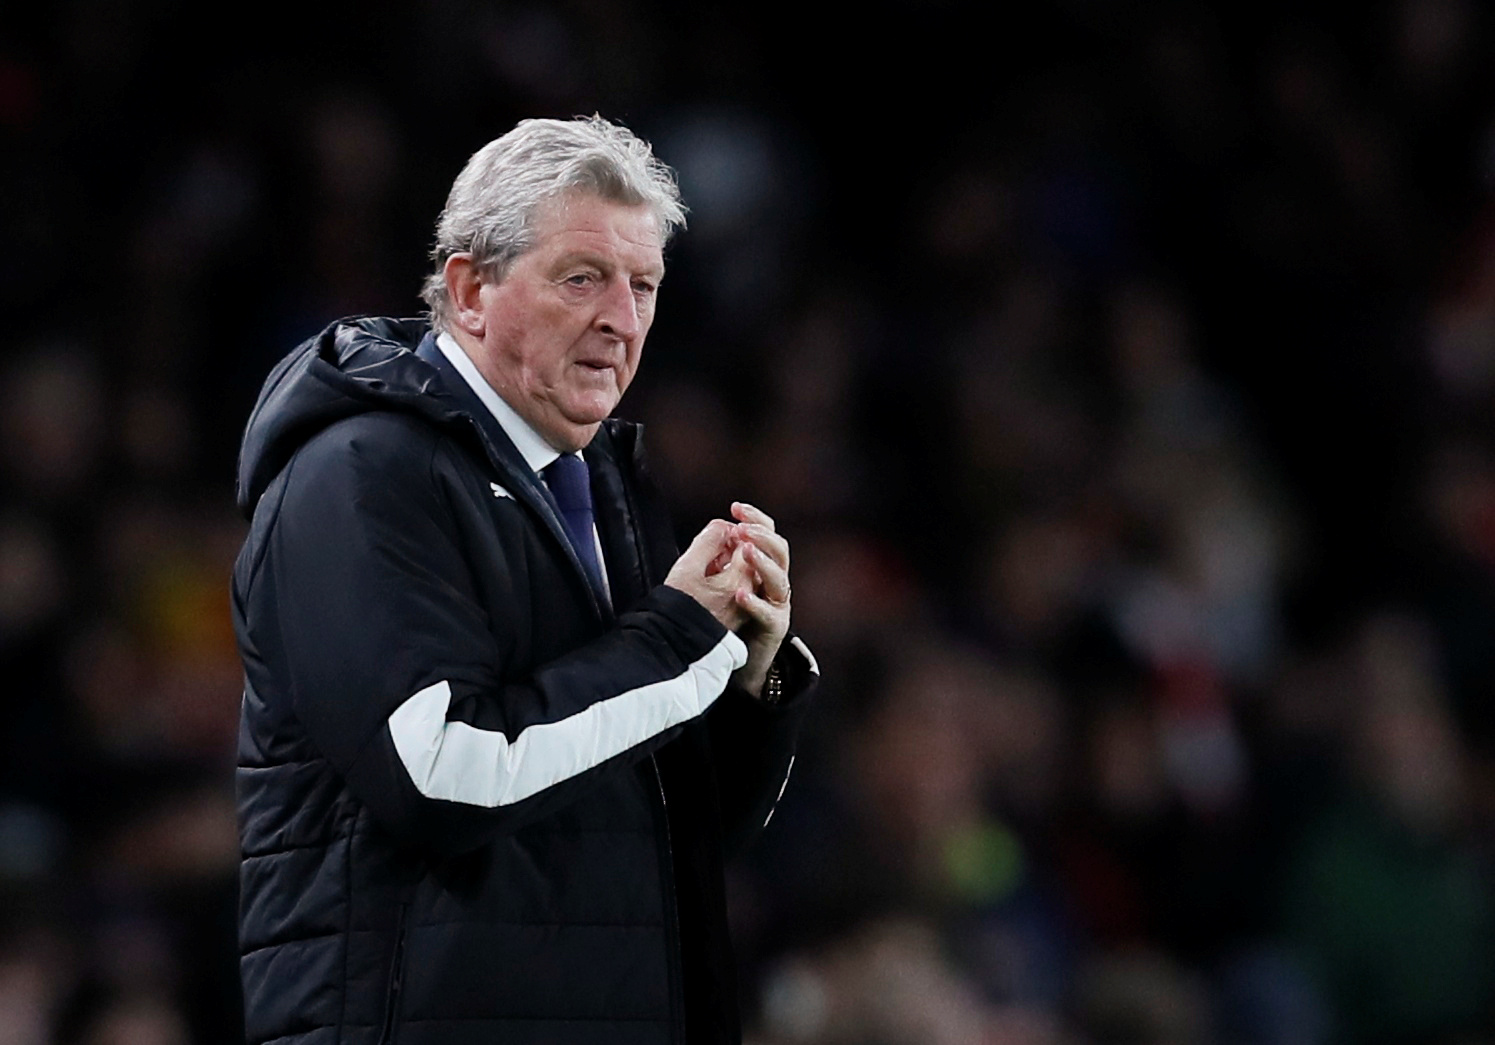 Lampard will be a great : Hodgson